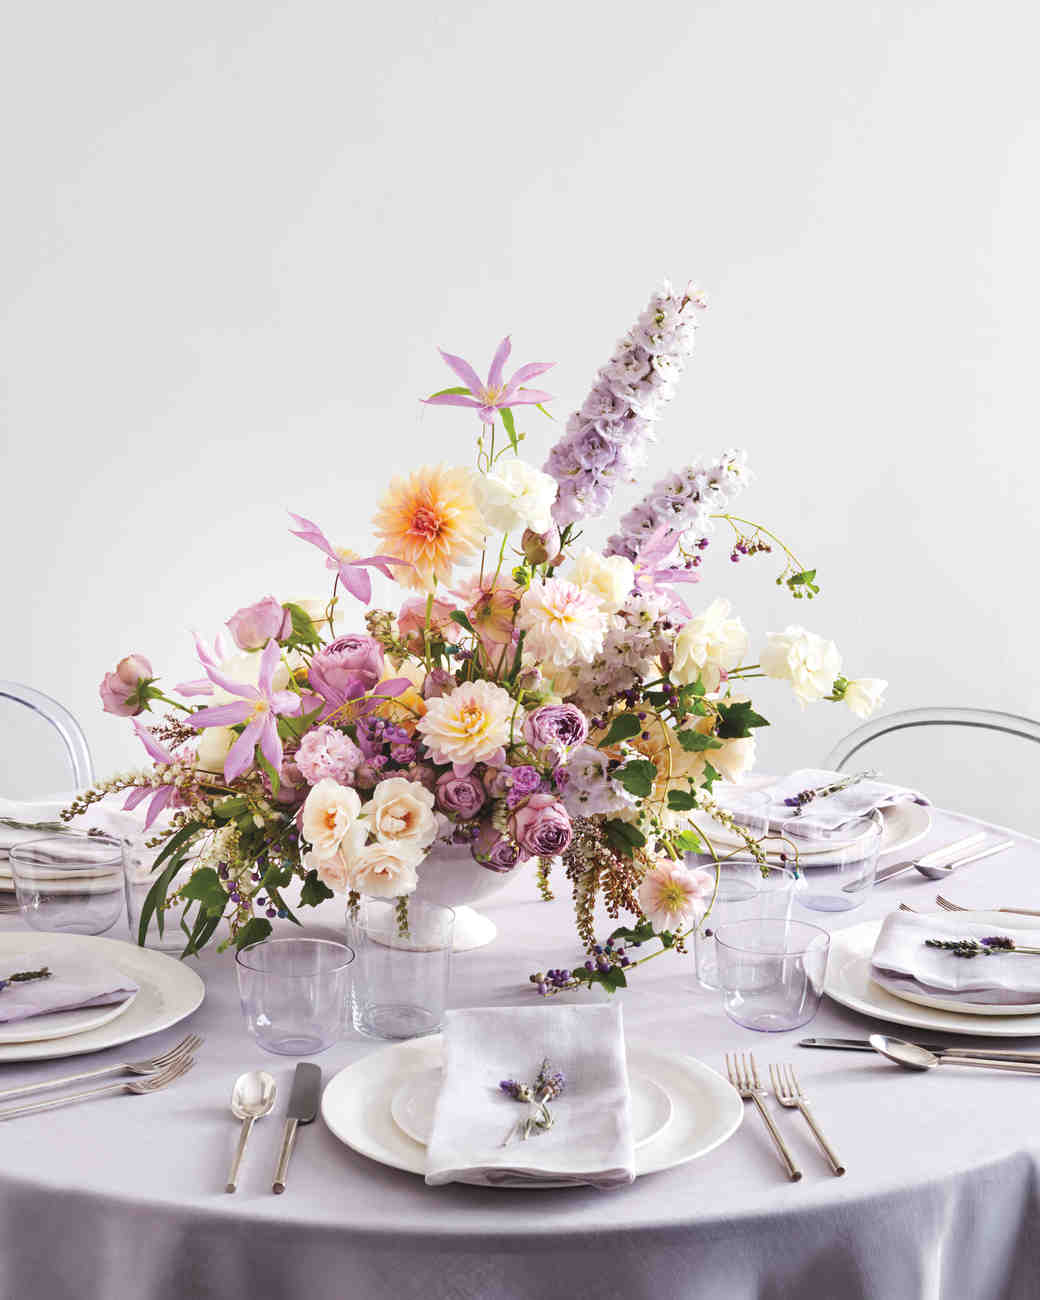 Ideas For Wedding Flower Arrangements: 23 DIY Wedding Centerpieces We Love